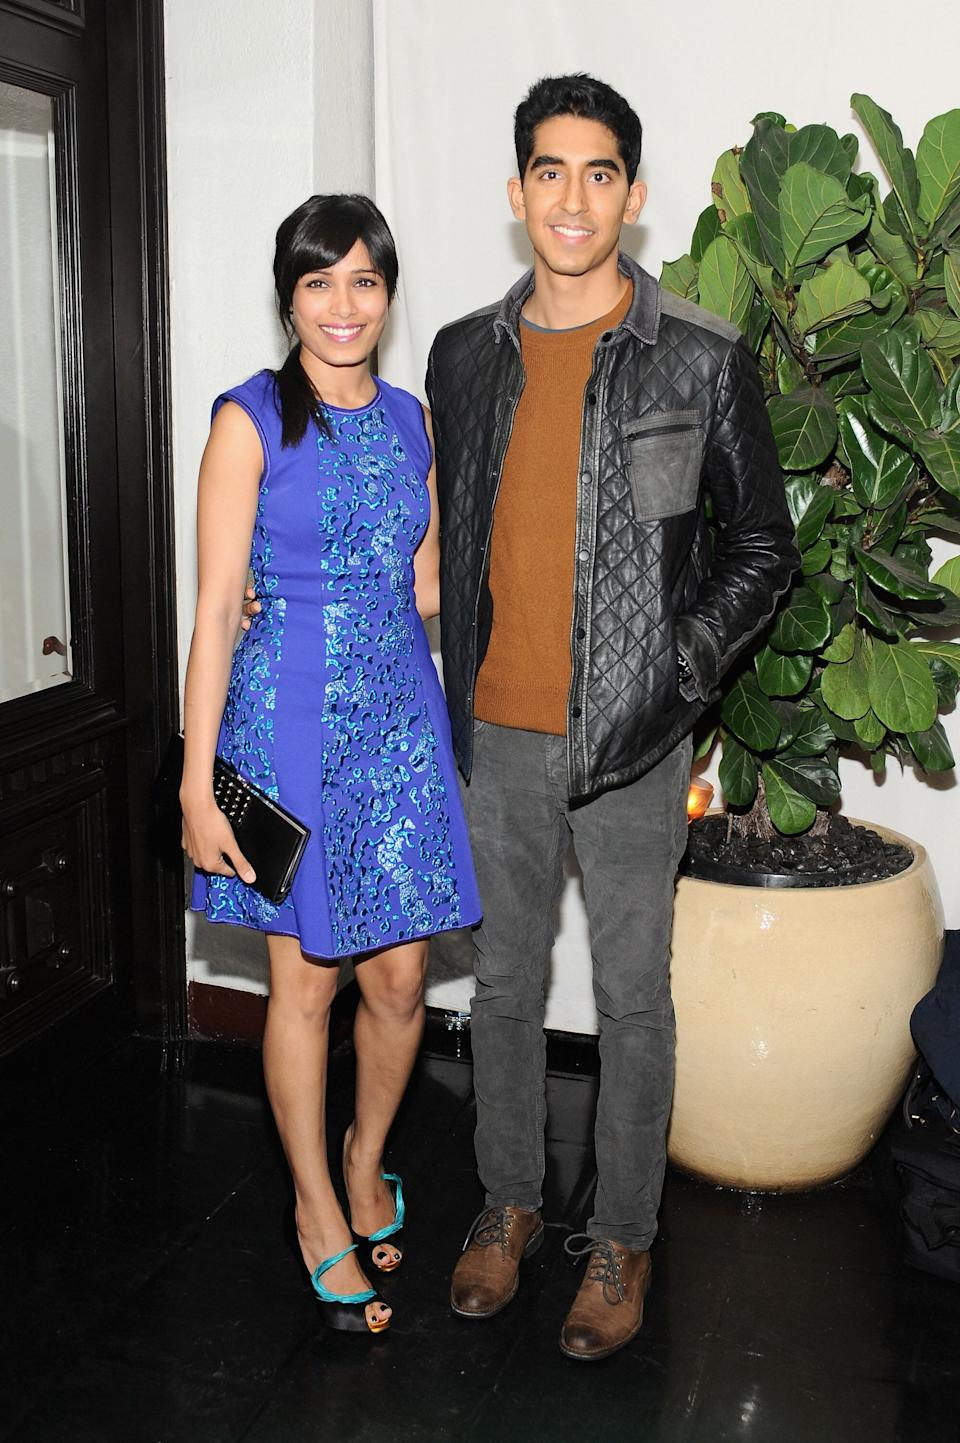 Patel and Pinto at Dom Perignon and W Magazine's celebration of the Golden Globes at Chateau Marmont in Los Angeles on Jan. 11, 2013.